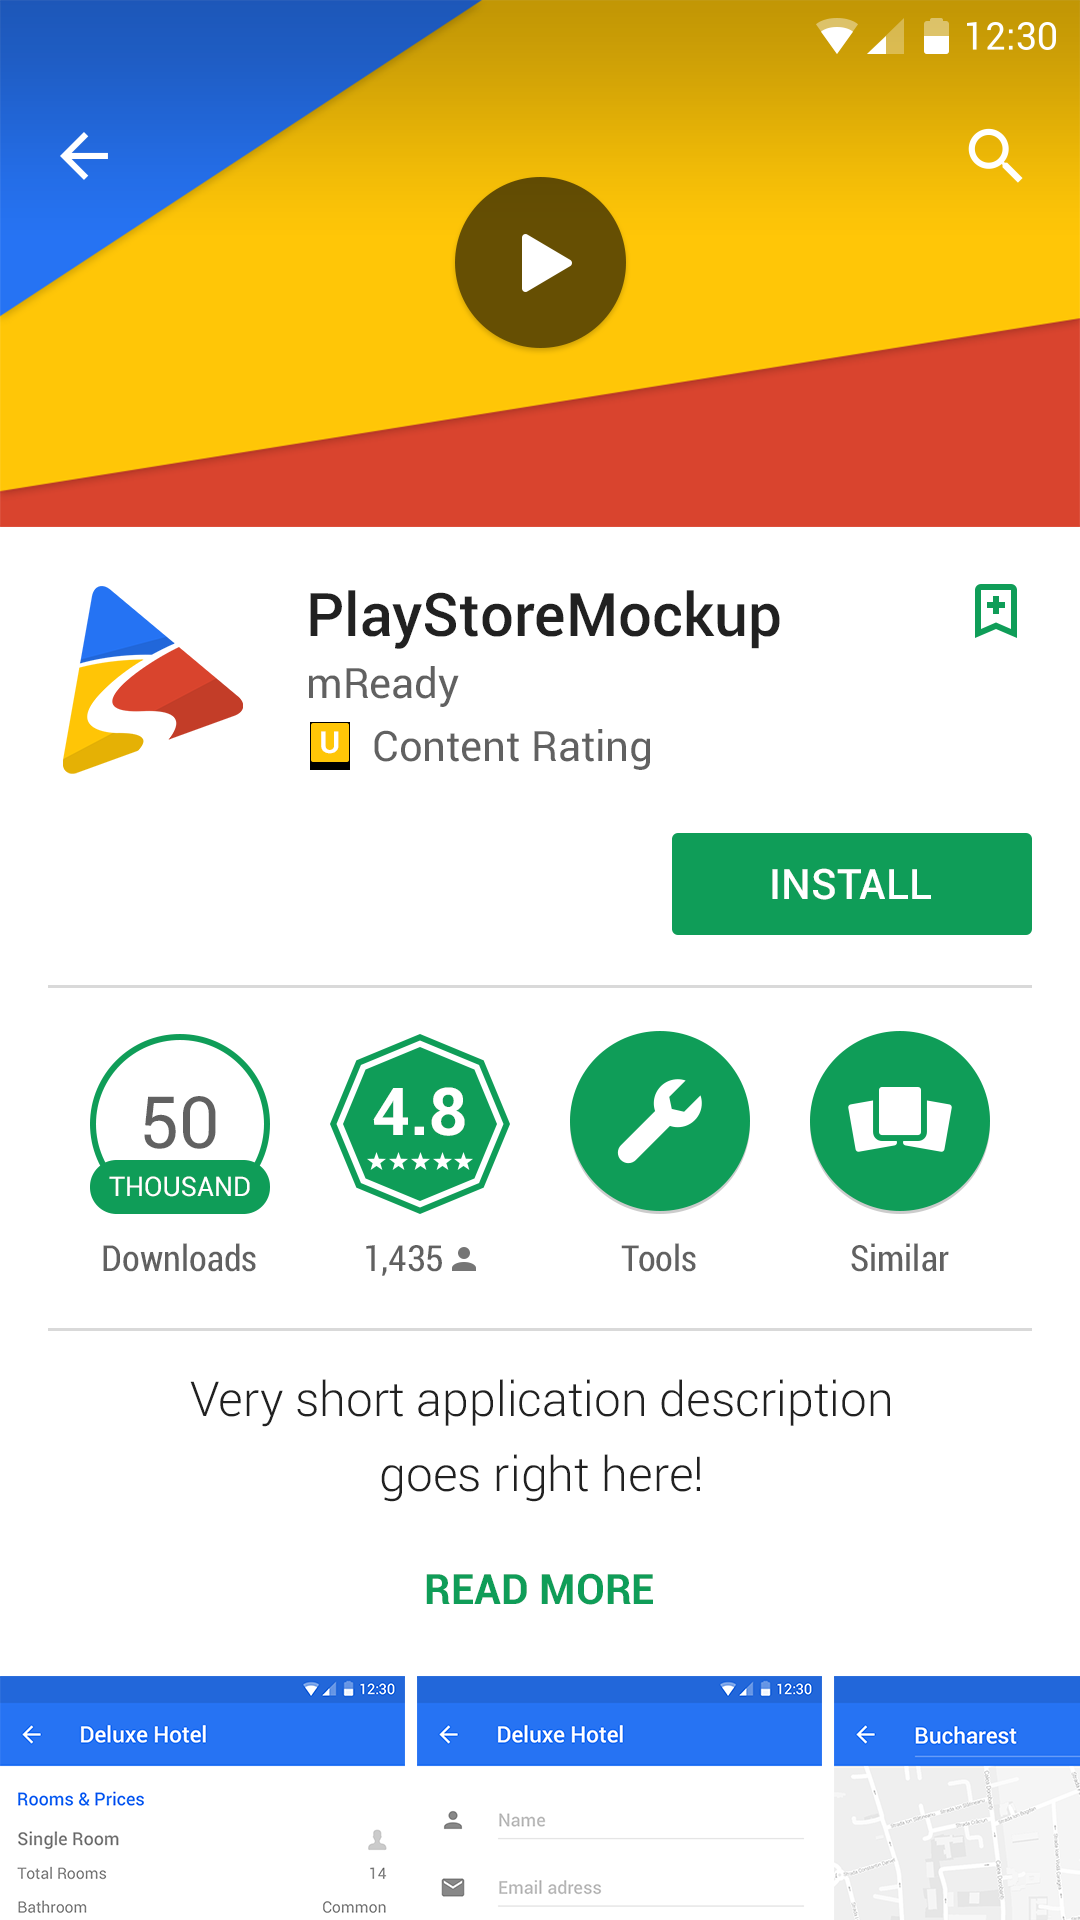 Play Store Mockup Application